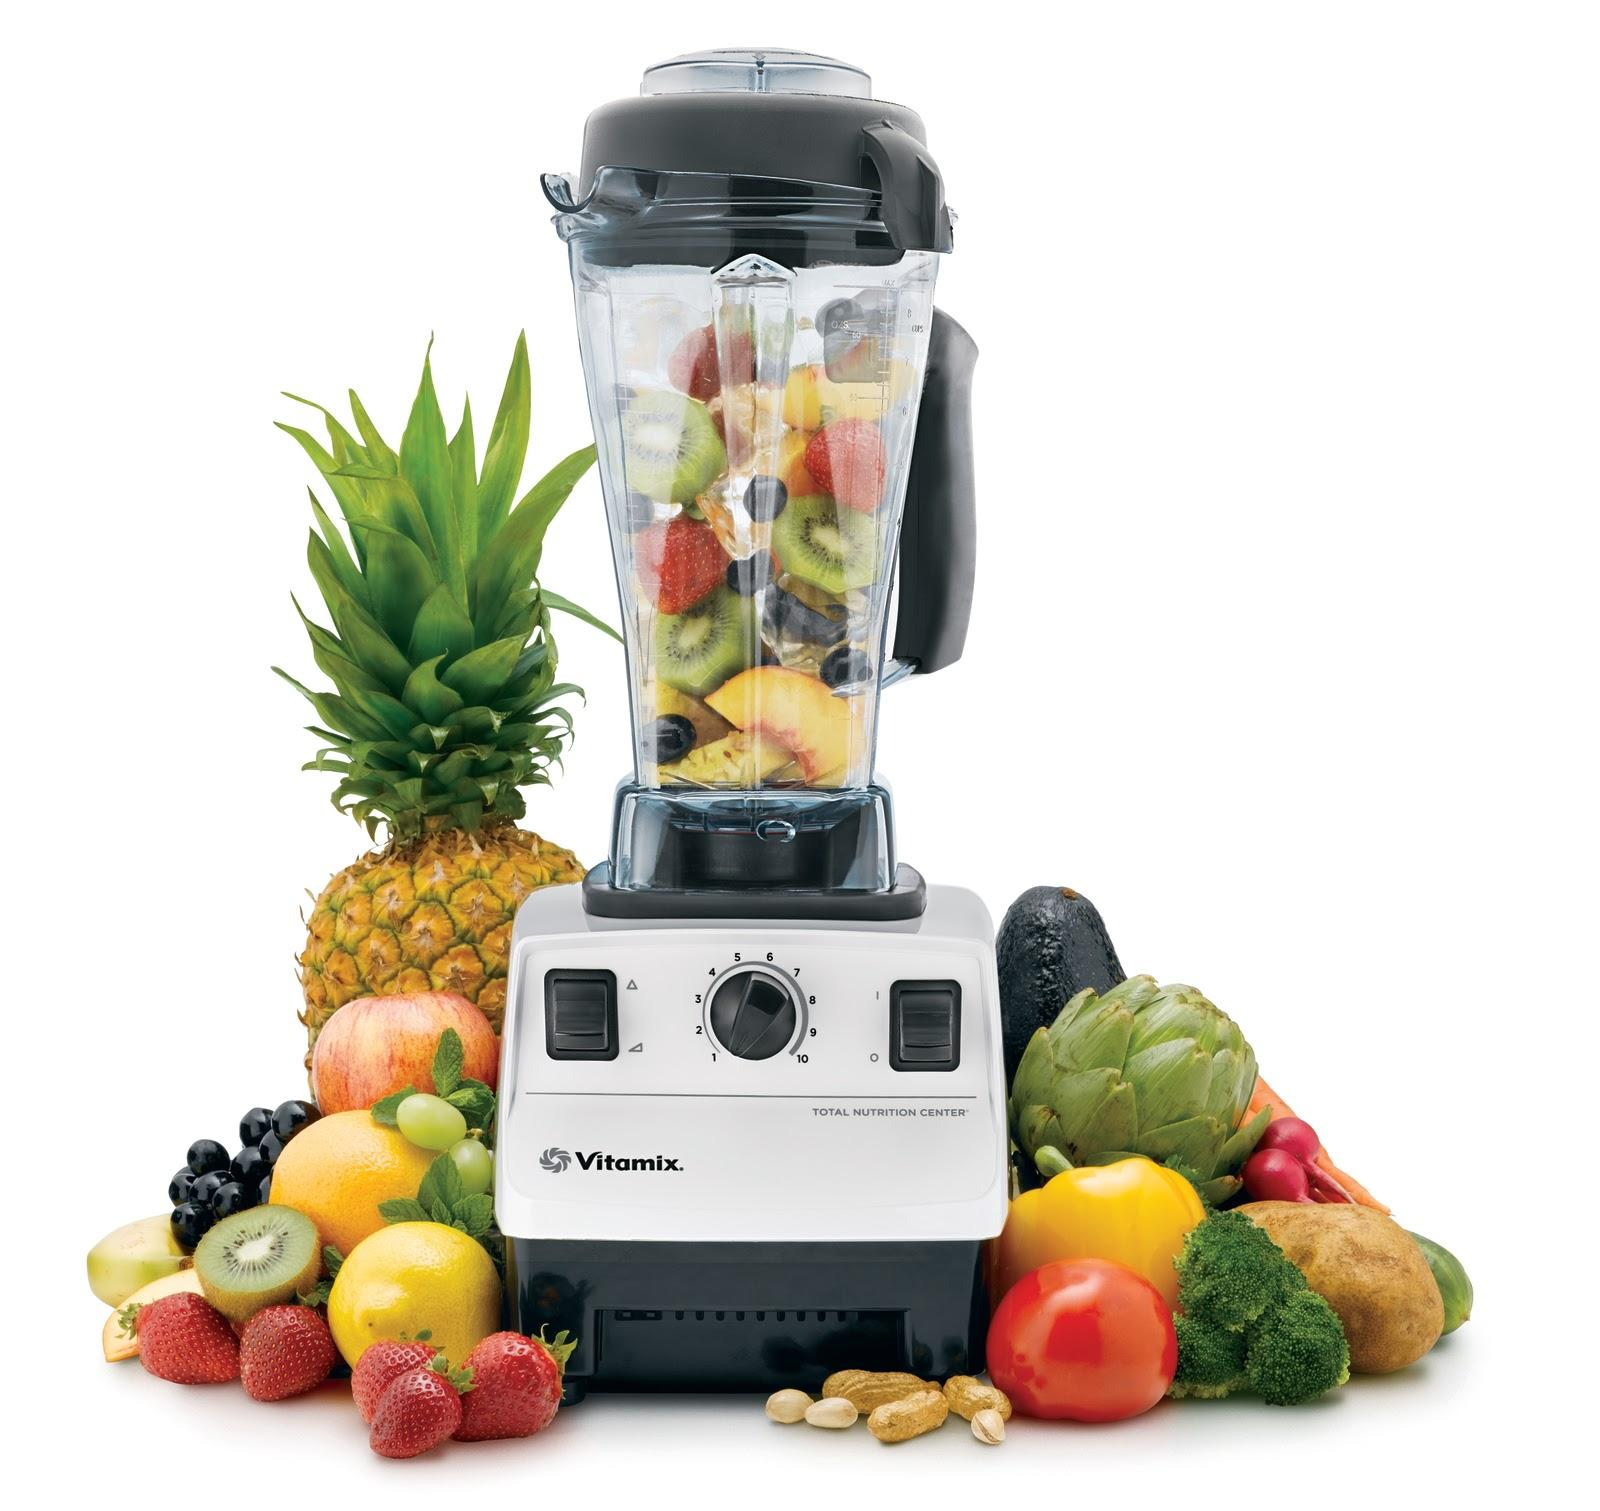 $299.00 Vitamix 5200 Standard Blenders (Refurbished with 5-year warranty)